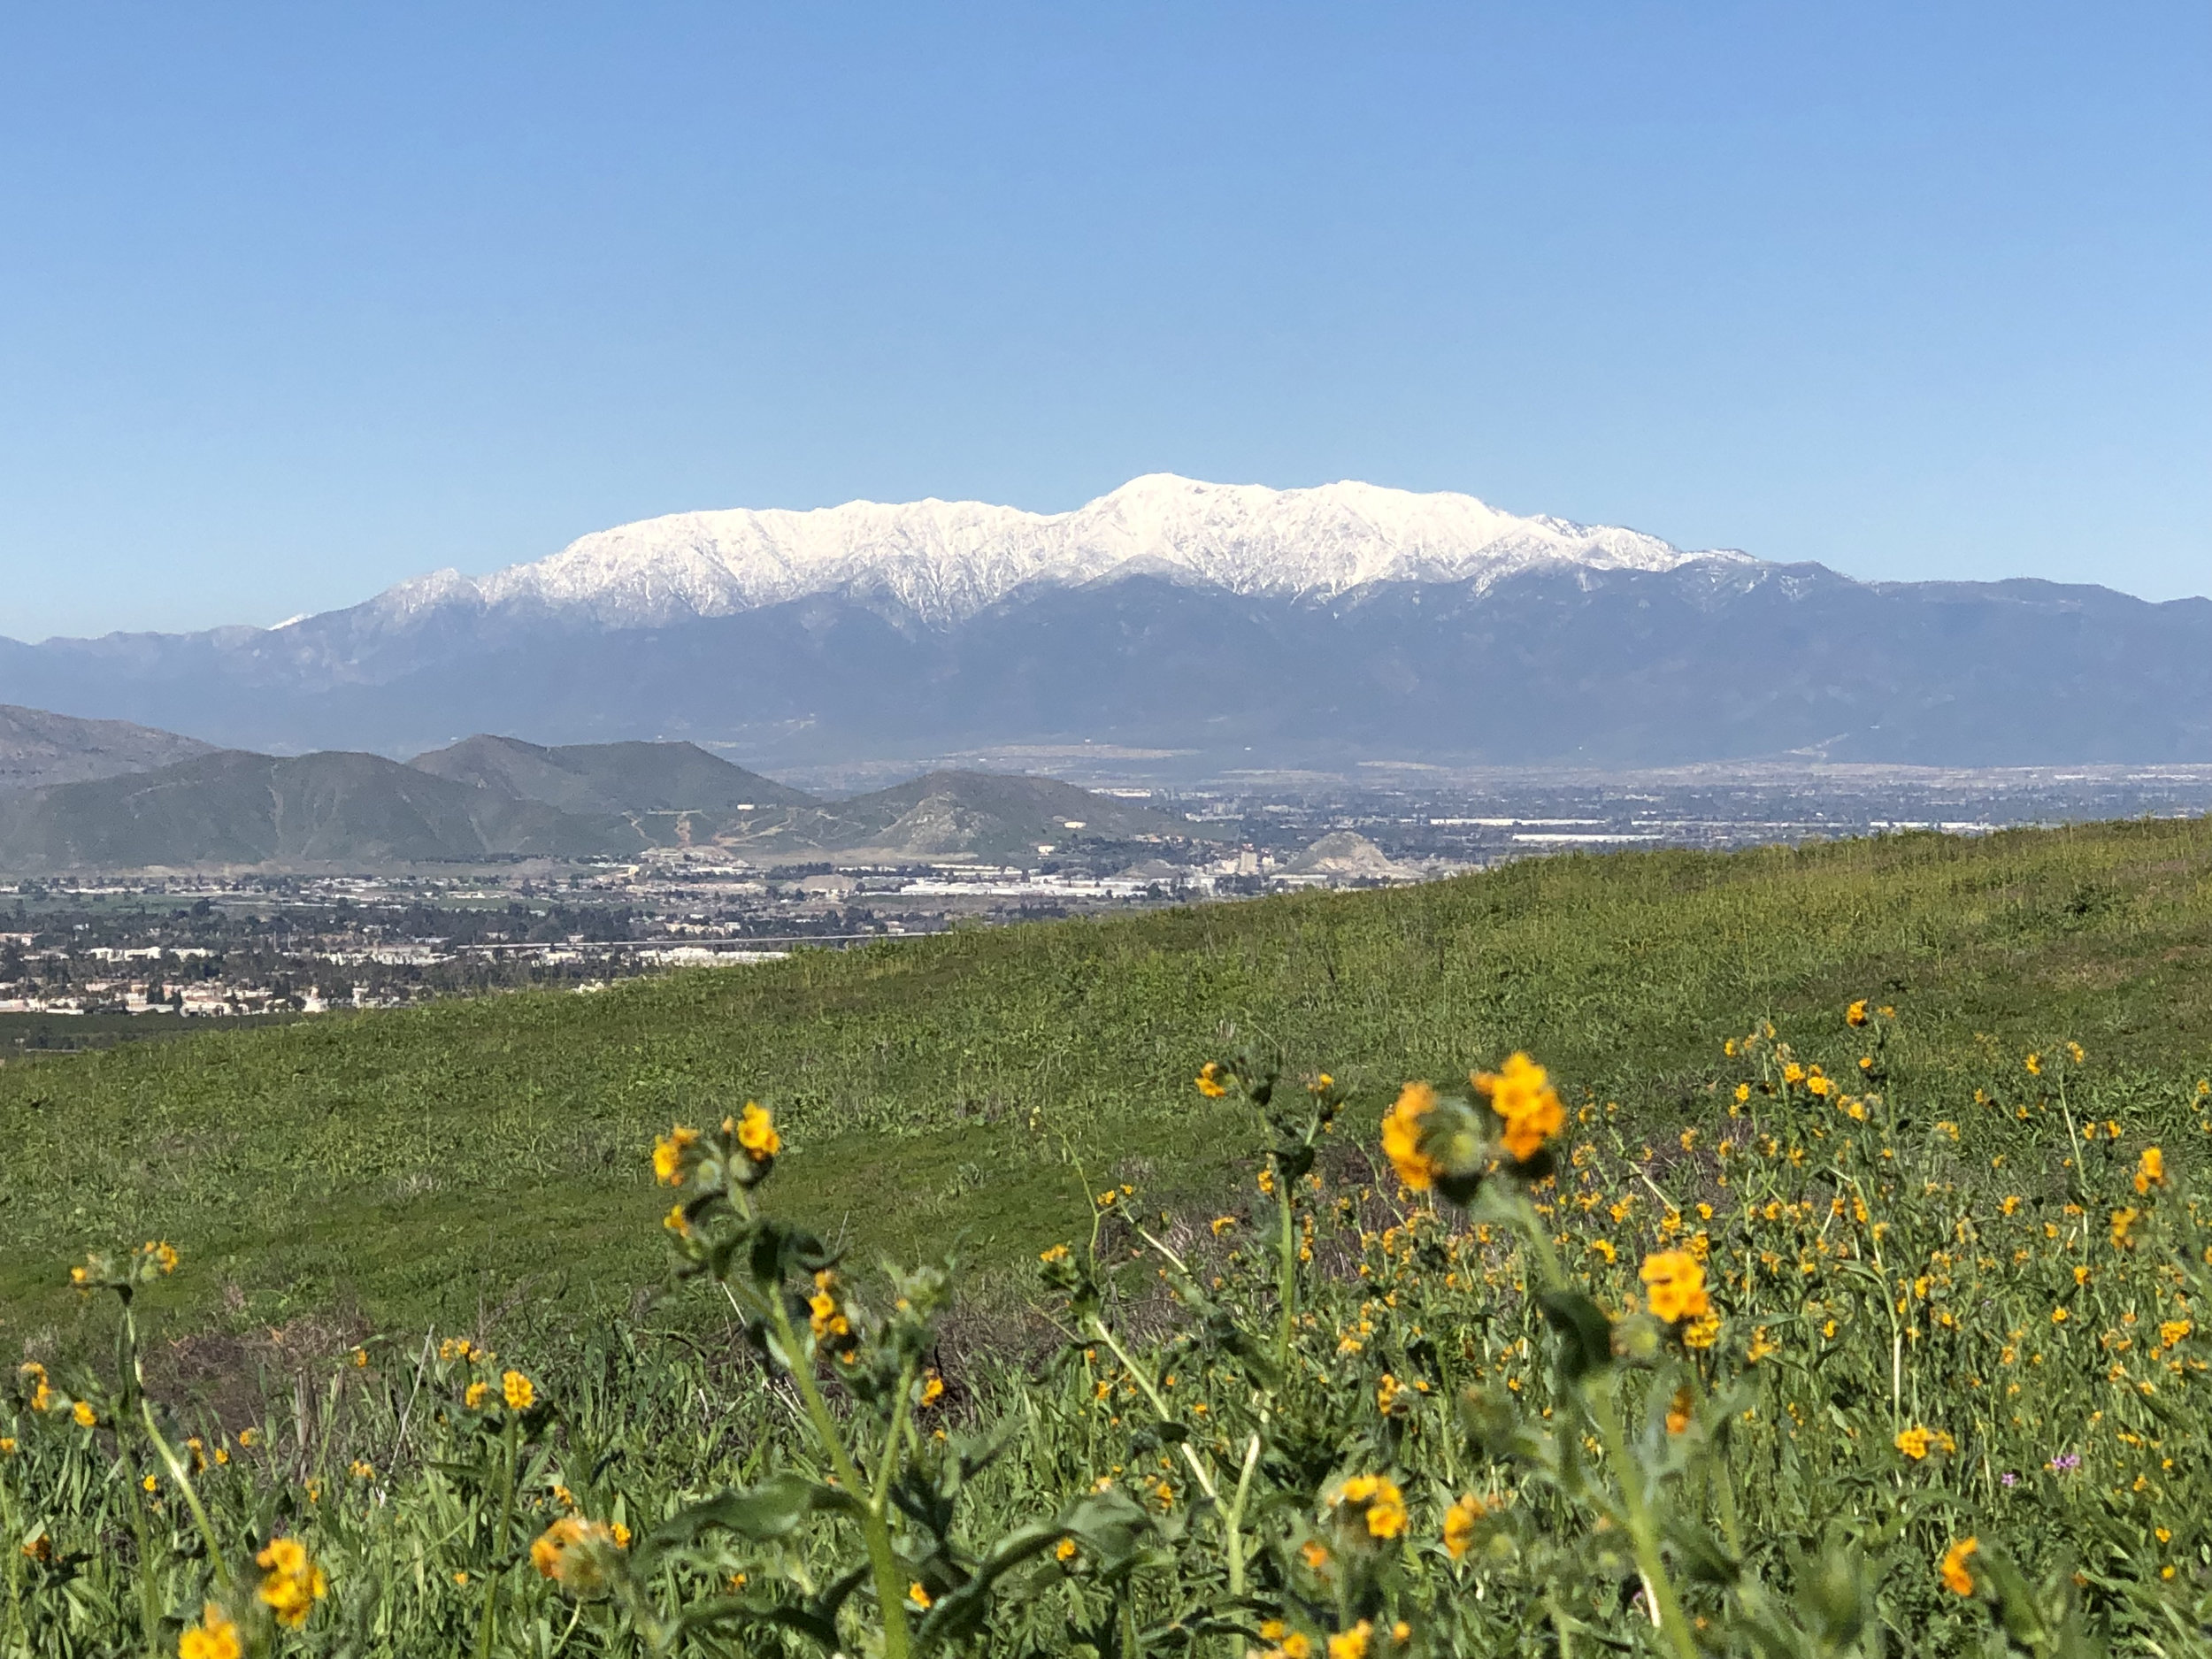 View of a snow-capped Mt. San Antonio from Sycamore Canyon Wilderness Park in Riverside, CA.  Photo credit: Alex Chrystal